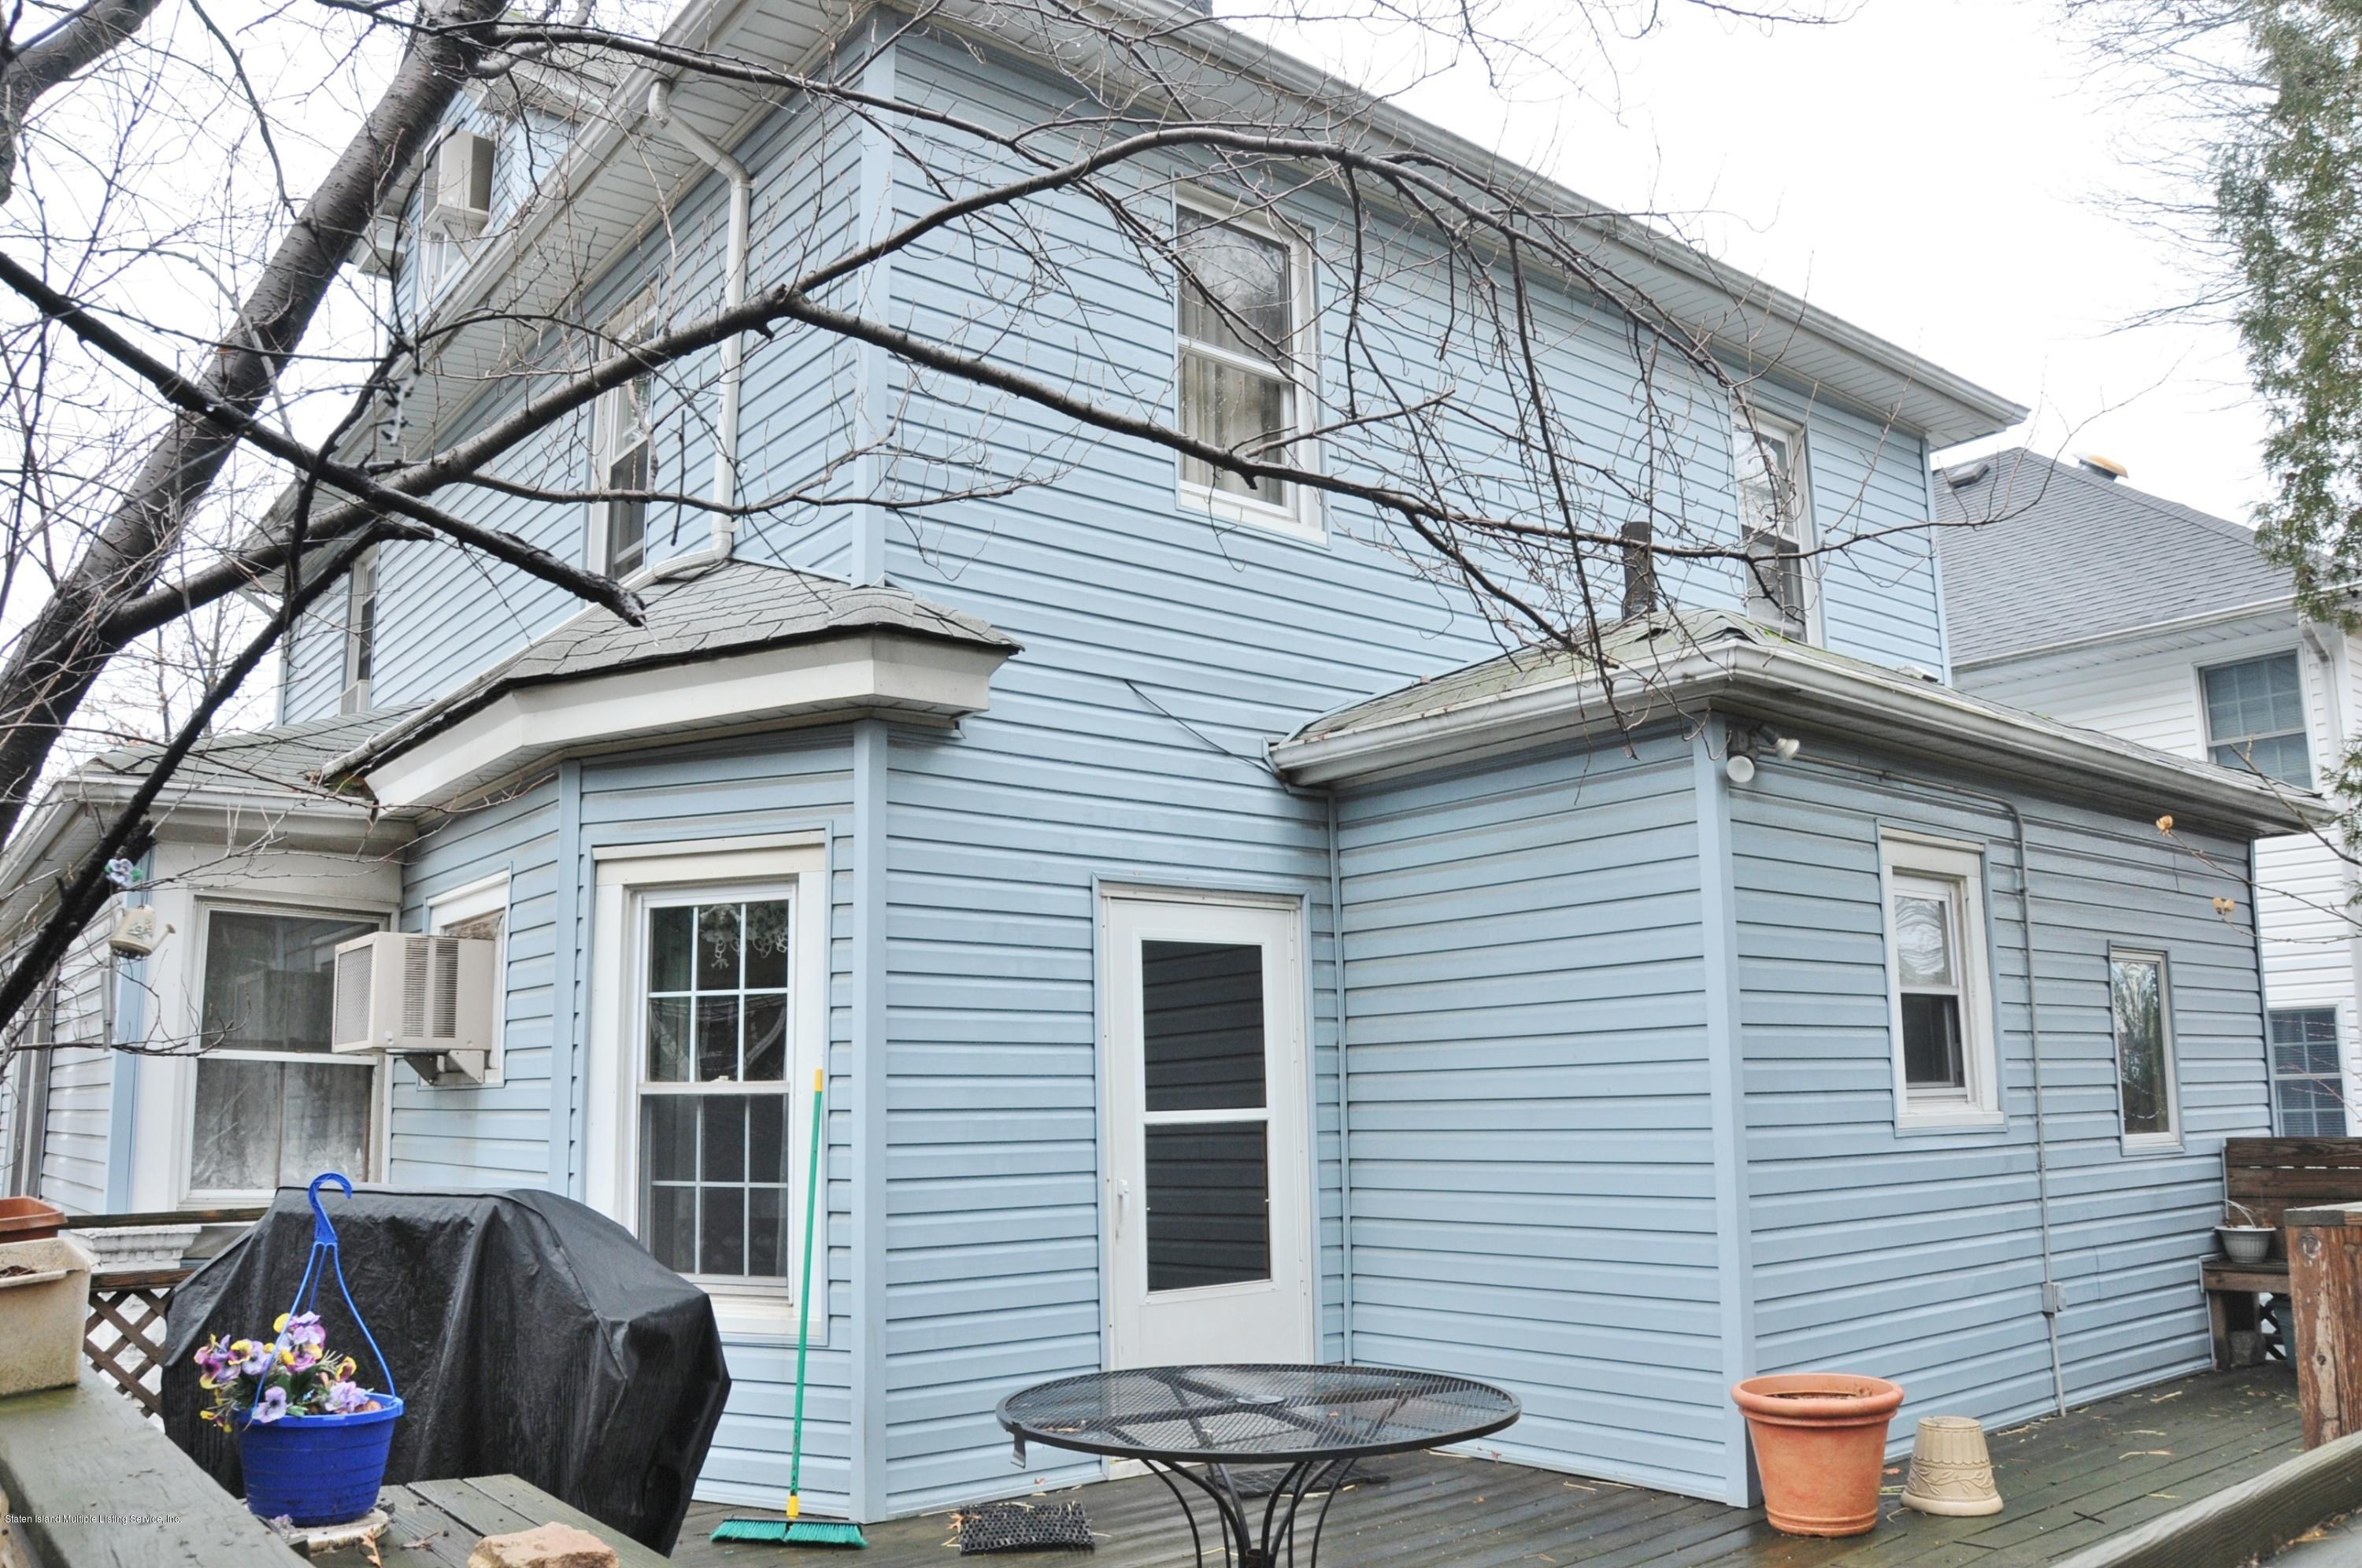 Single Family - Detached 383 Livermore Avenue  Staten Island, NY 10314, MLS-1126135-29